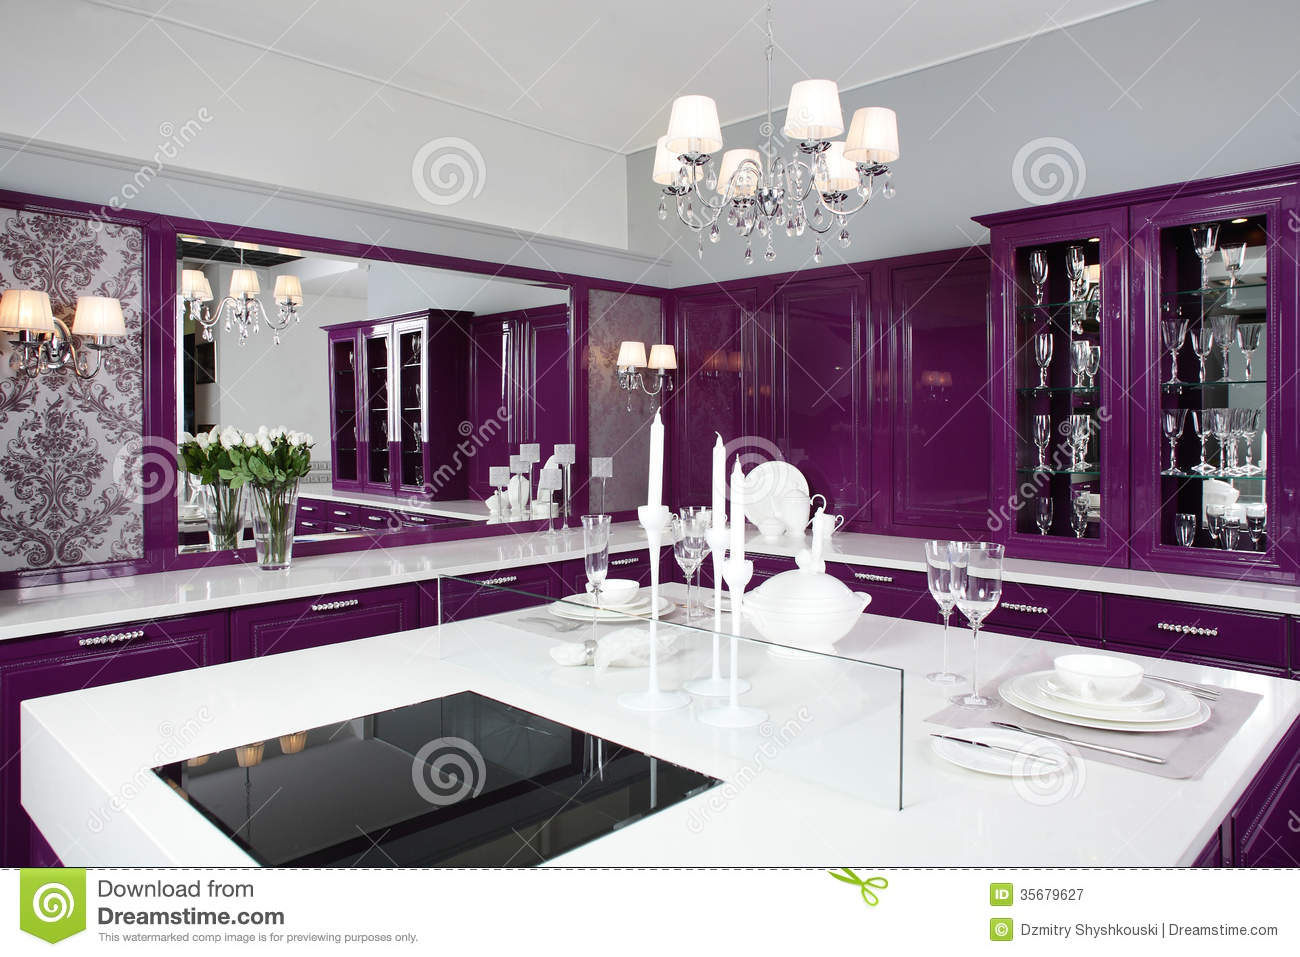 Modern purple kitchen with stylish furniture royalty free for Stylish modern furniture